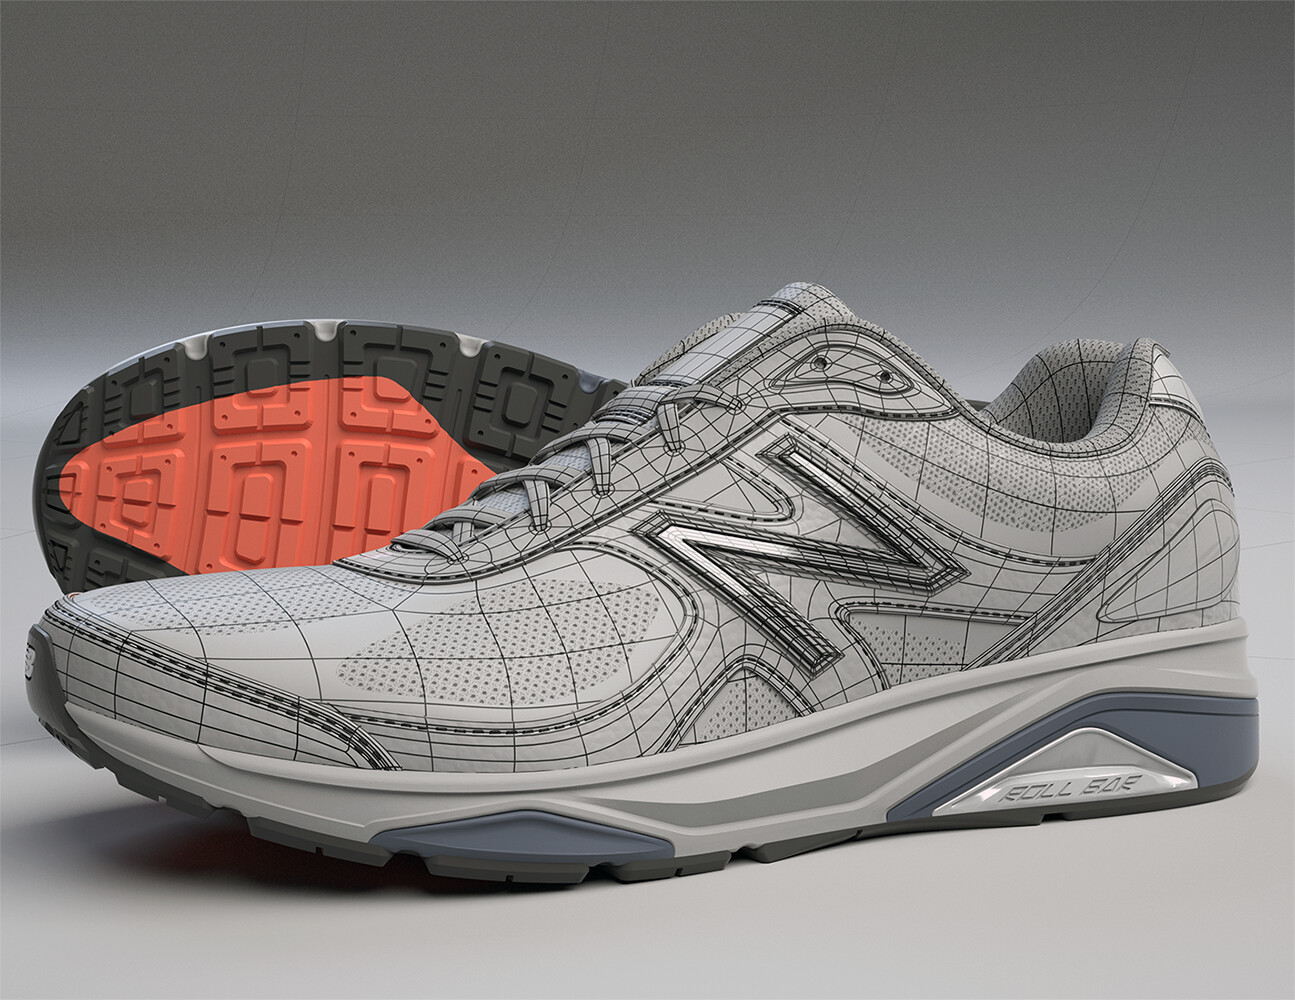 Wire-frame of the New Balance 1540v3 Shoe.  Made in Modo, is all quads and was rendered in Modo.